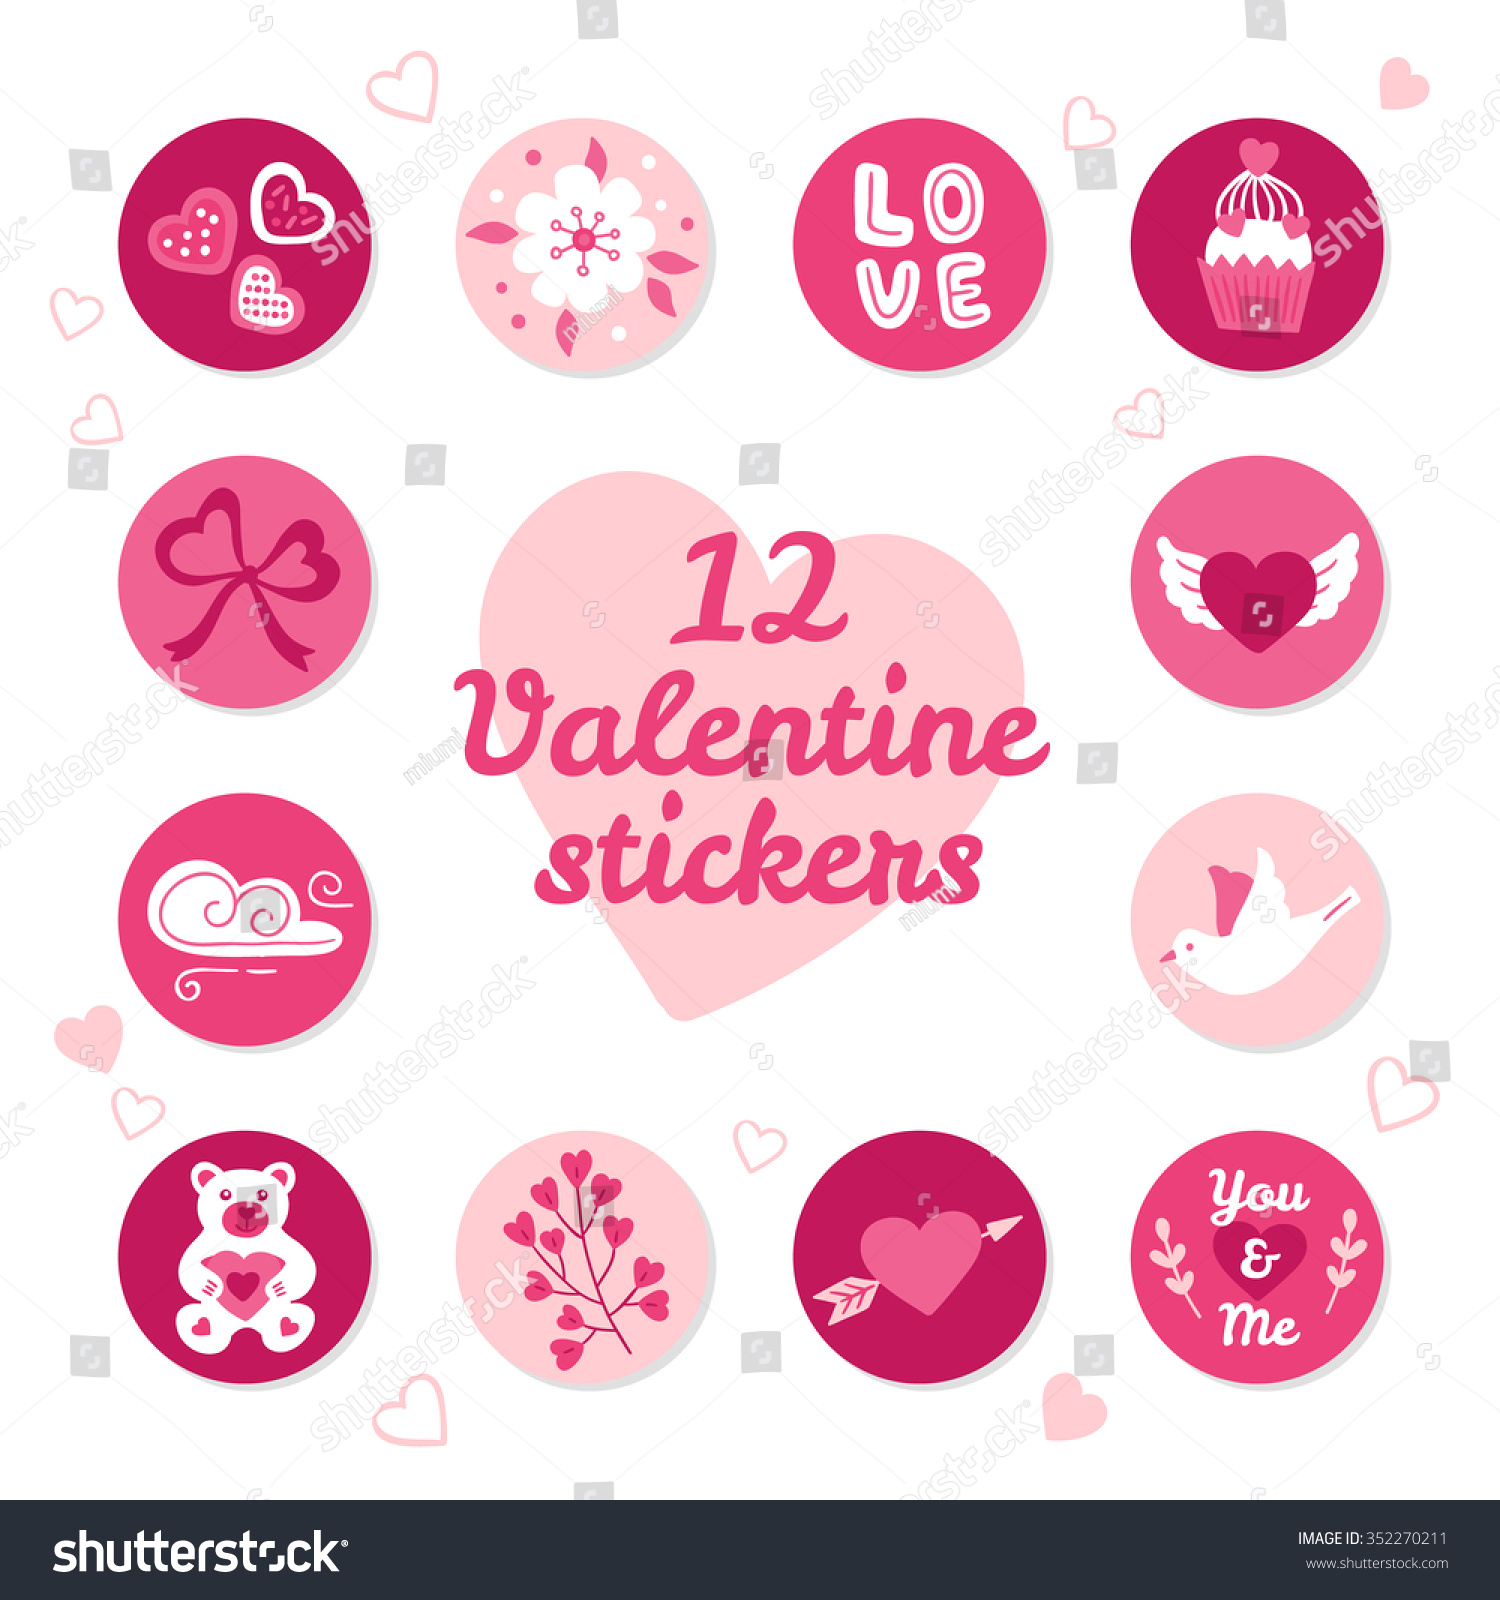 set 12 valentine stickers hearts flower stock vector (royalty free